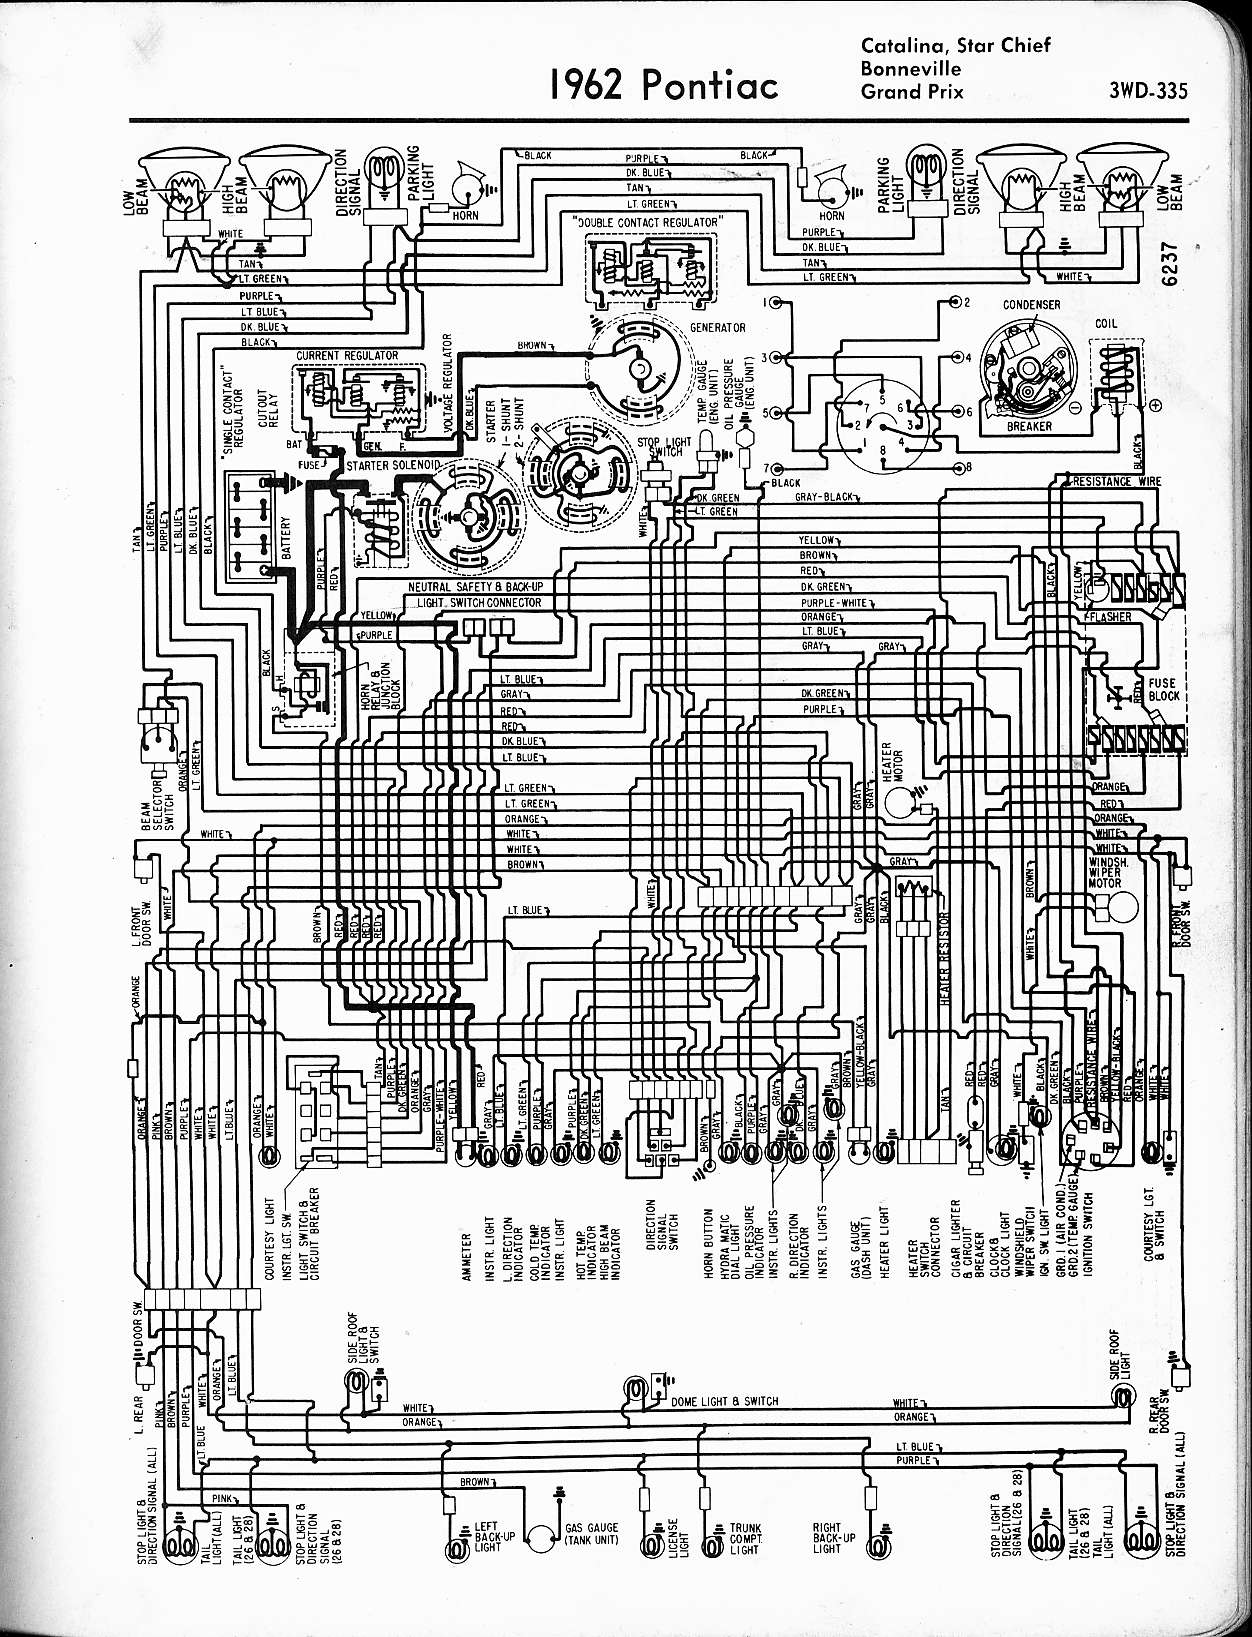 MWire5765 335 wallace racing wiring diagrams 2002 pontiac bonneville wiring diagram at crackthecode.co